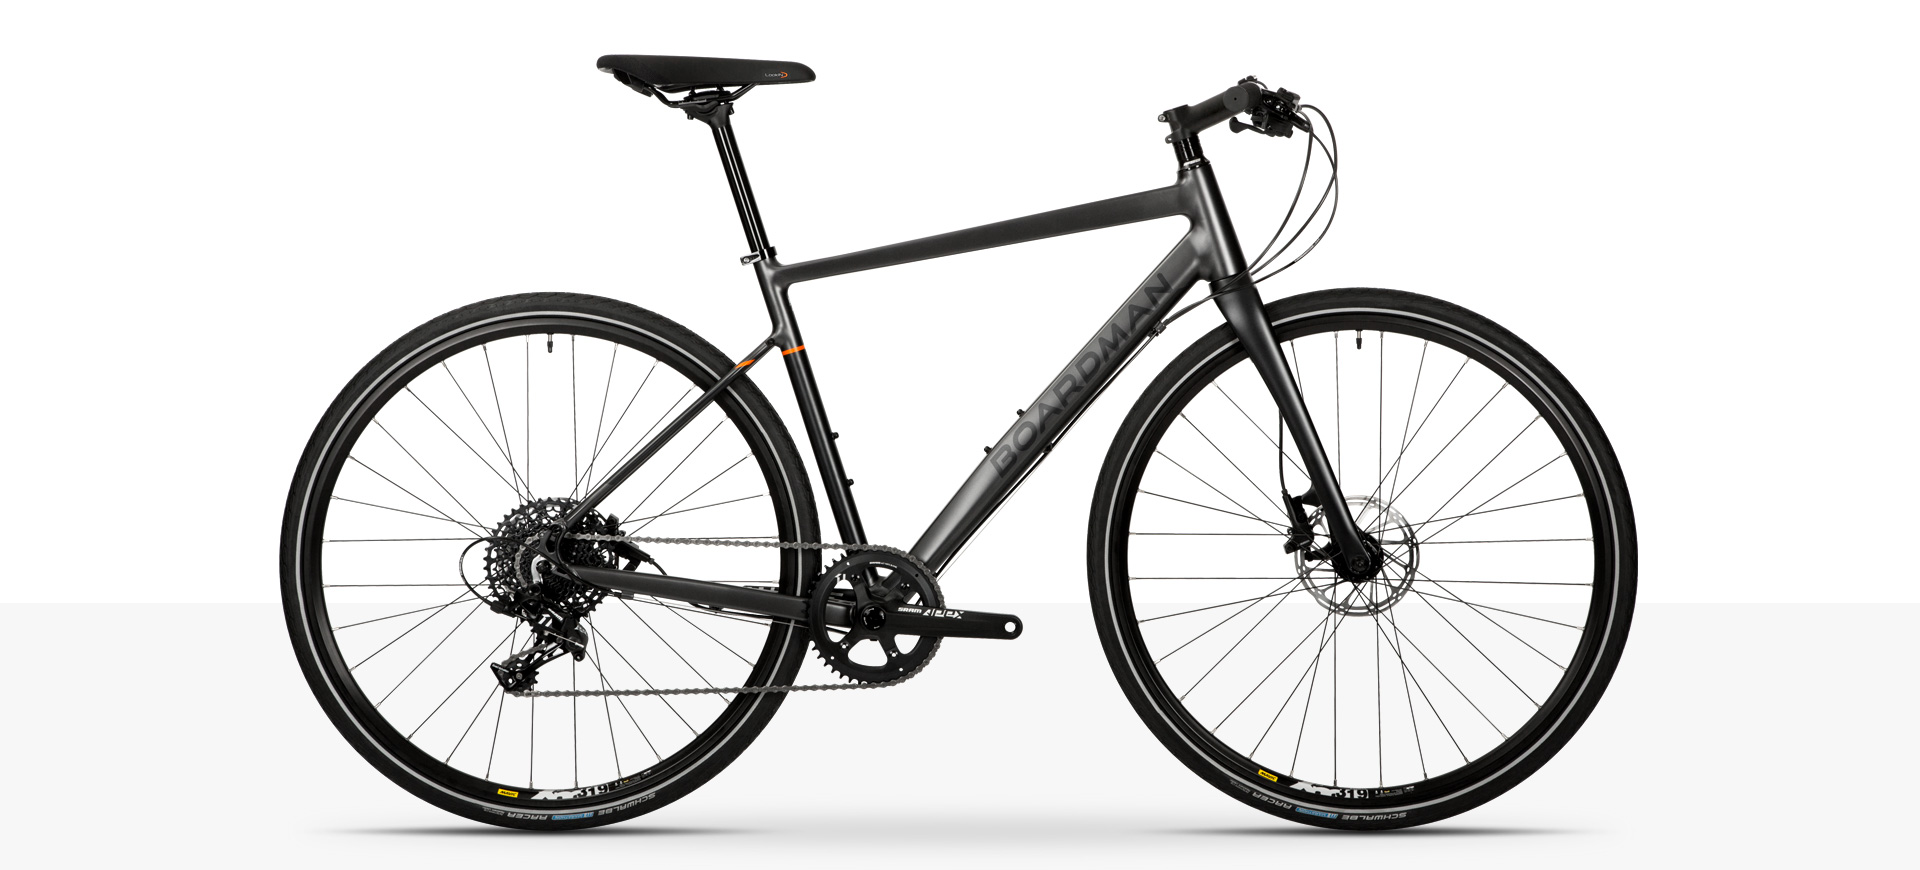 Boardman HYB 8.9 Hybrid Bike in Black